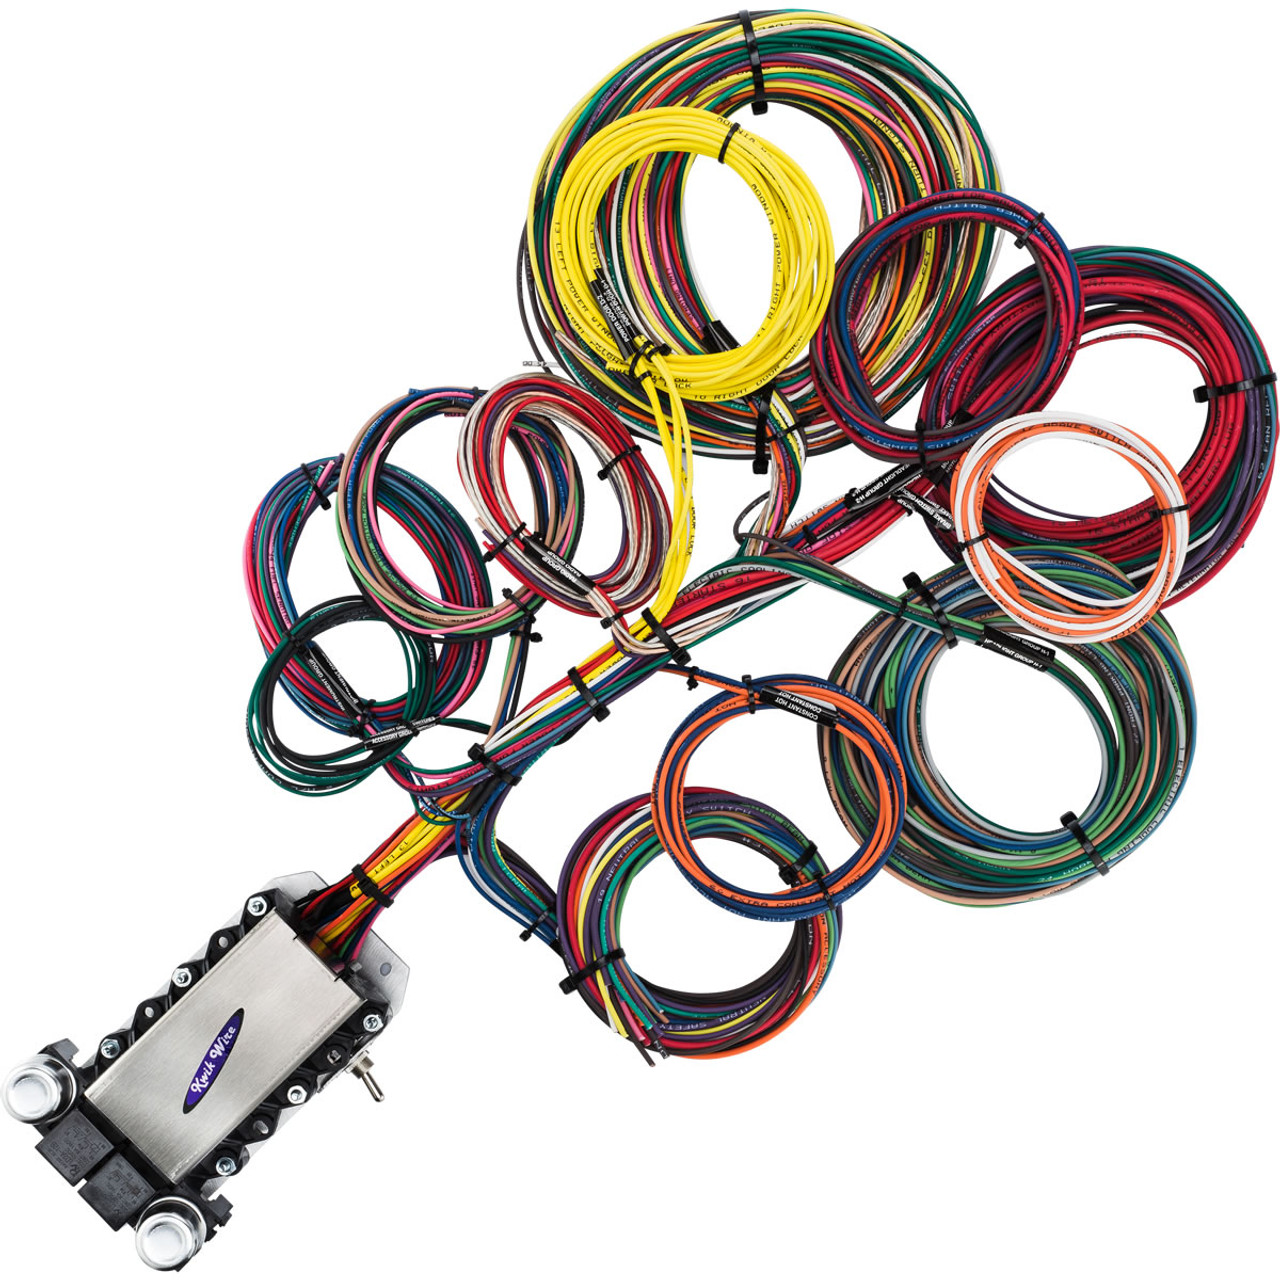 medium resolution of 22 circuit ford wire harness kwikwire com electrify your rideford wire harness 3